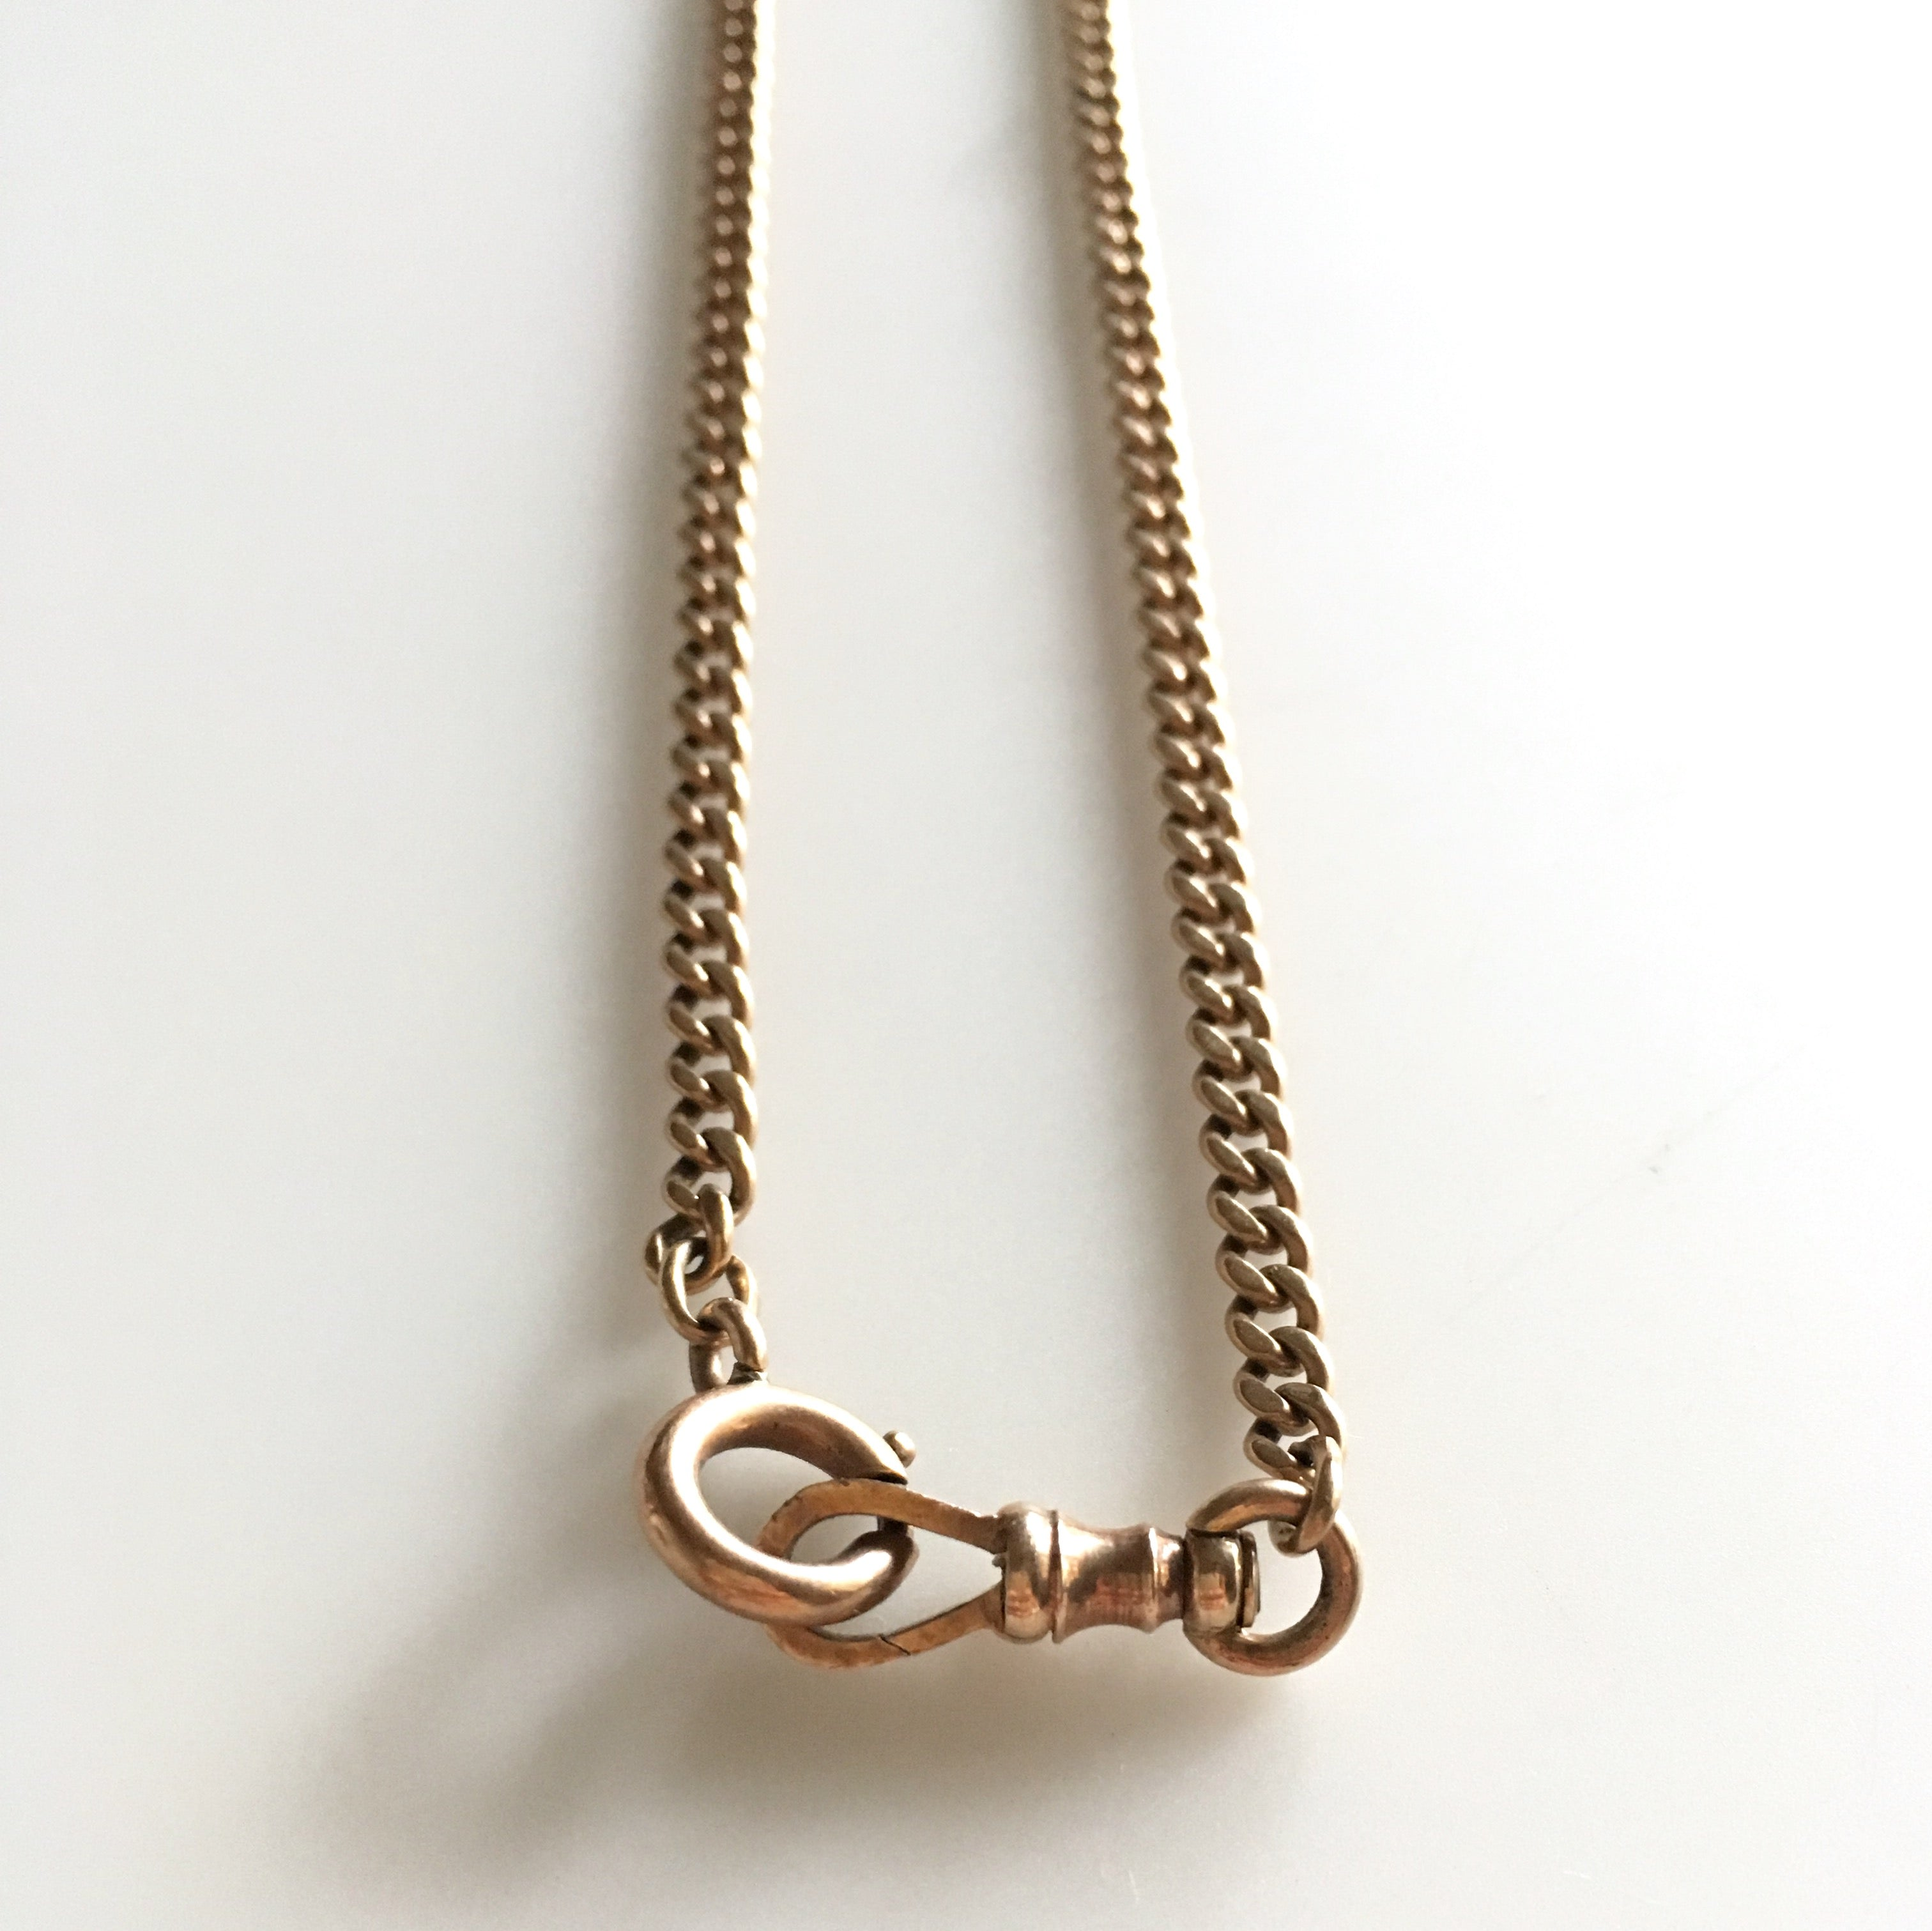 Antique rose gold curb-link chain, 15""